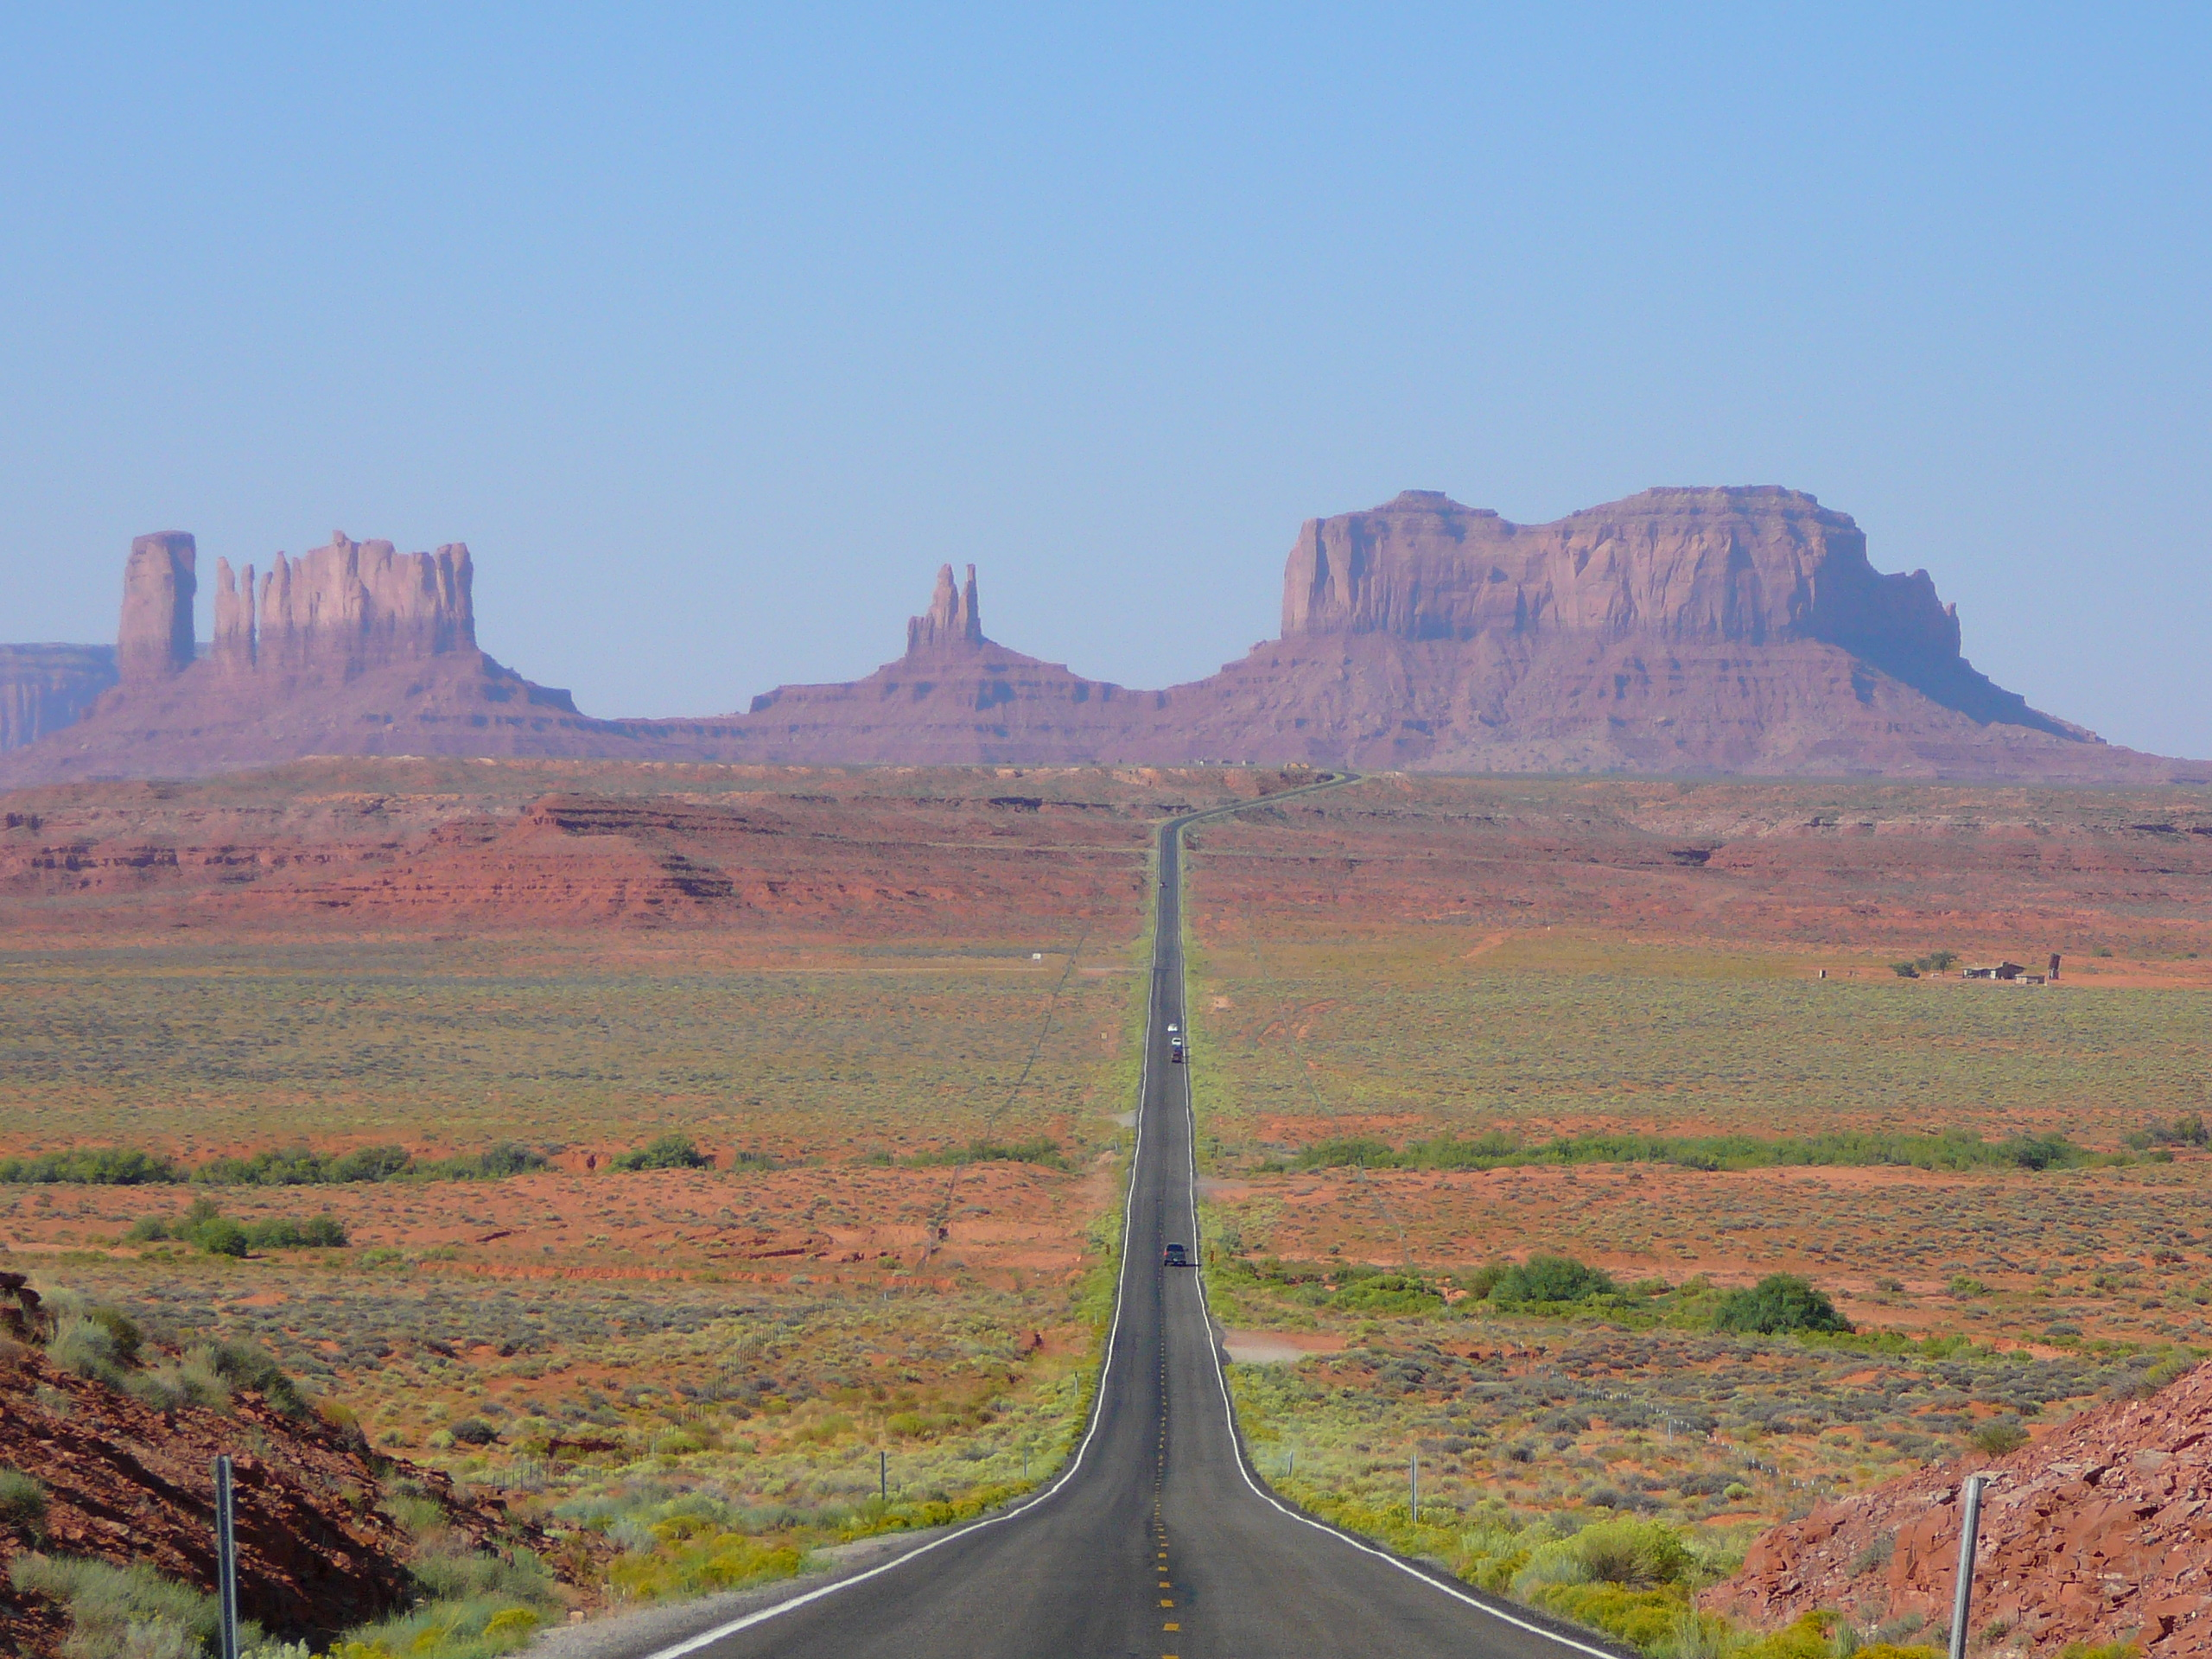 View of Monument Valley in Utah, looking south on US 163